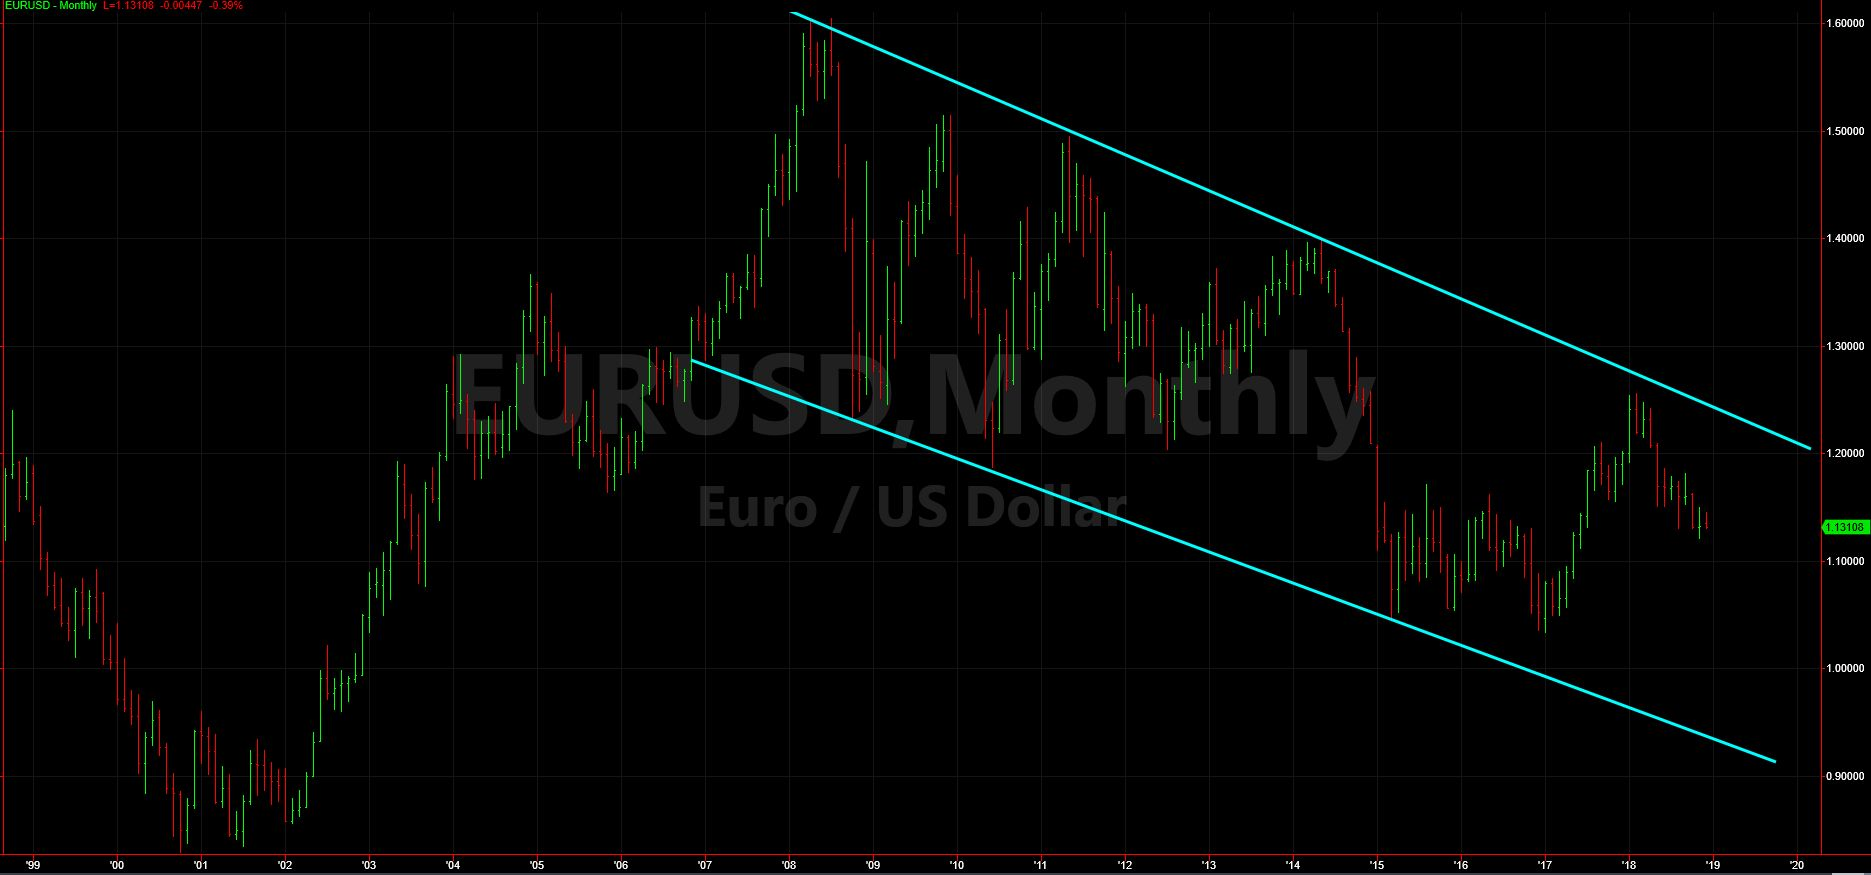 Euro/USD Monthly Chart for Nov 2018 Growth Portfolio Update